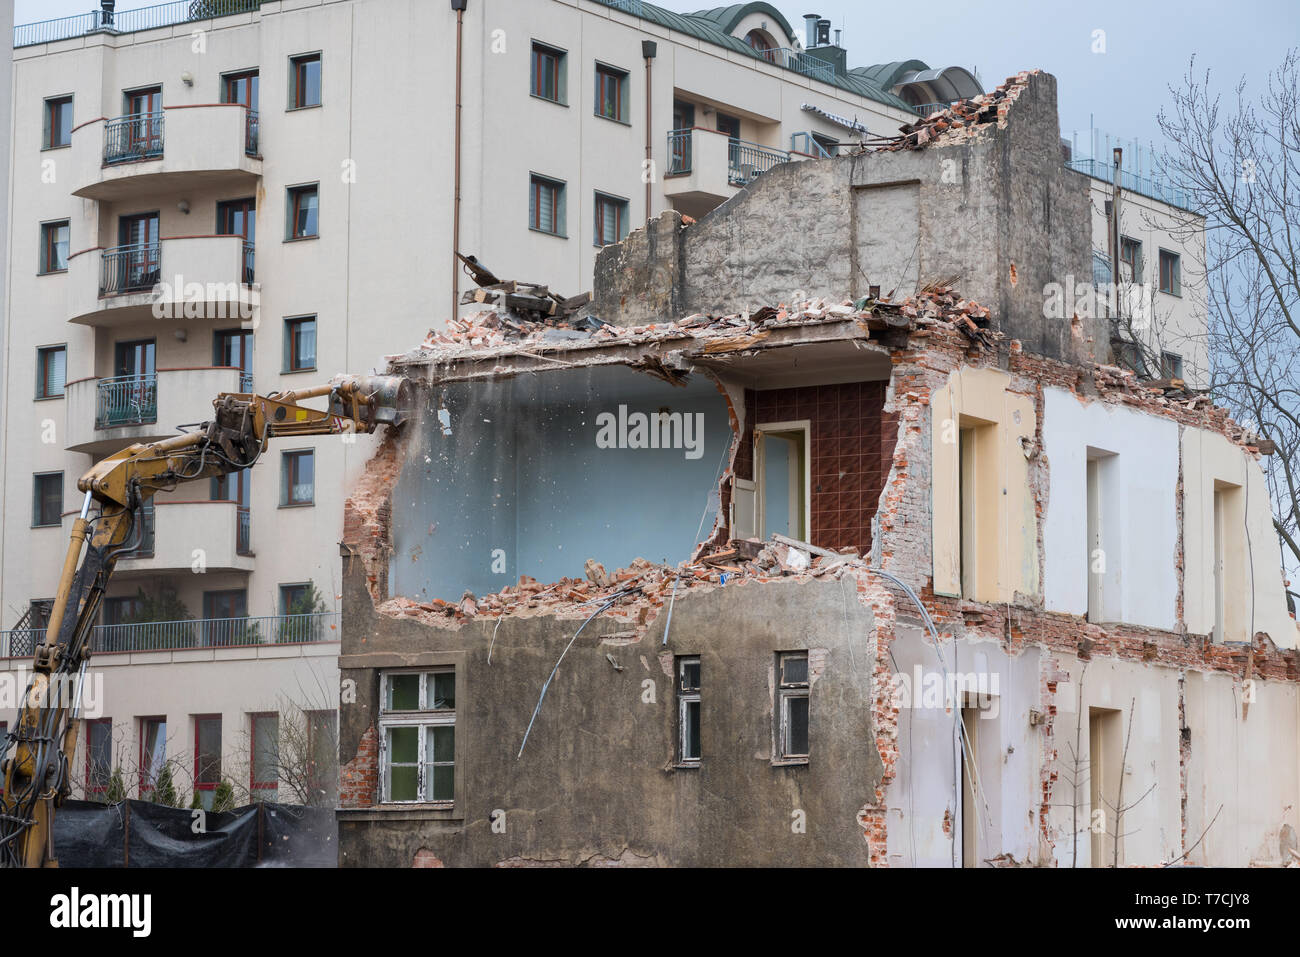 Residential building demolition with excavator - Stock Image